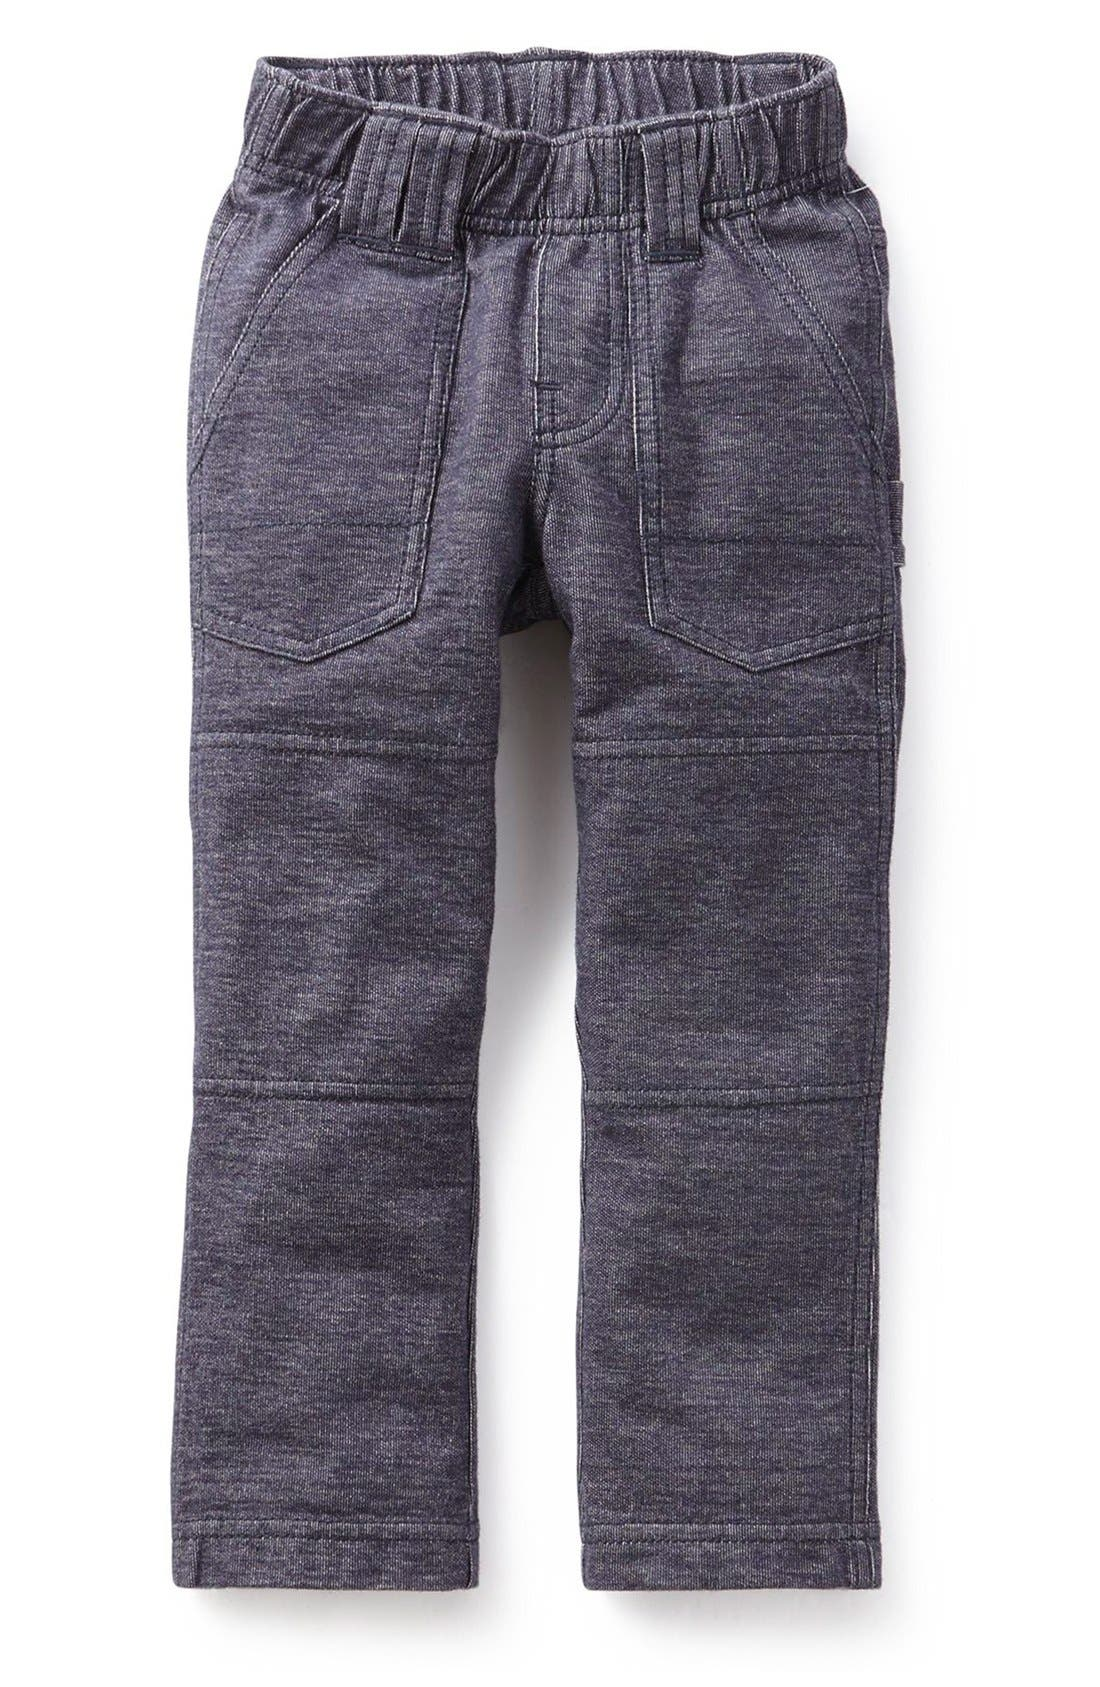 'Playwear' Pants,                             Main thumbnail 1, color,                             Indigo